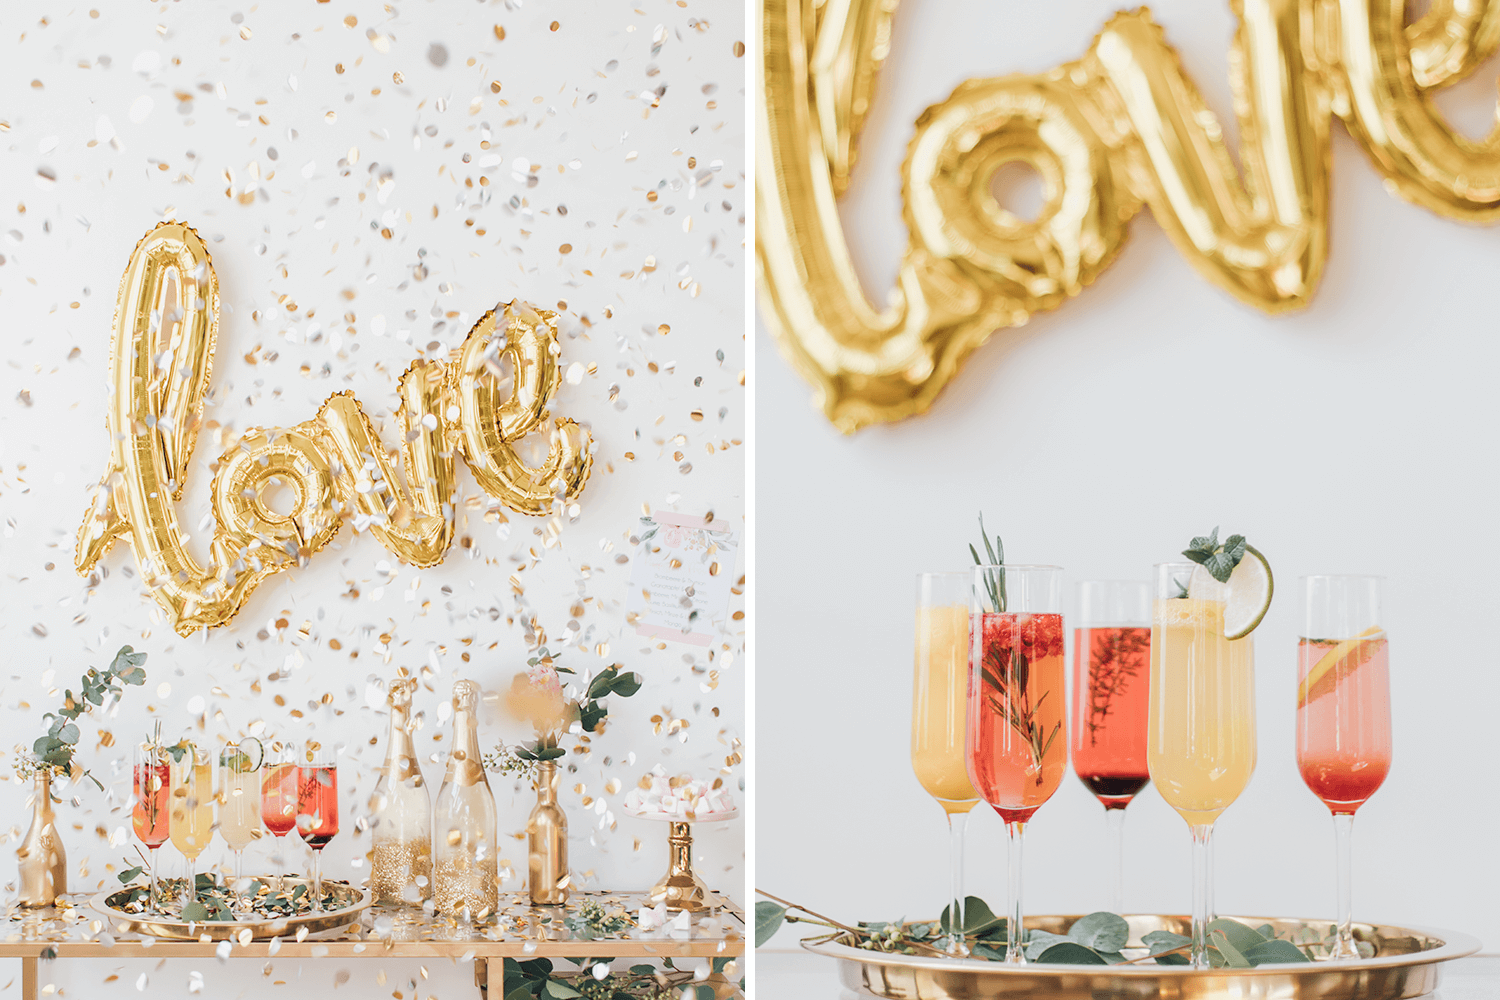 Diy Anleitungen Pimp Your Prosecco Bar Die Leckersten Rezeptideen Maid Of Honor